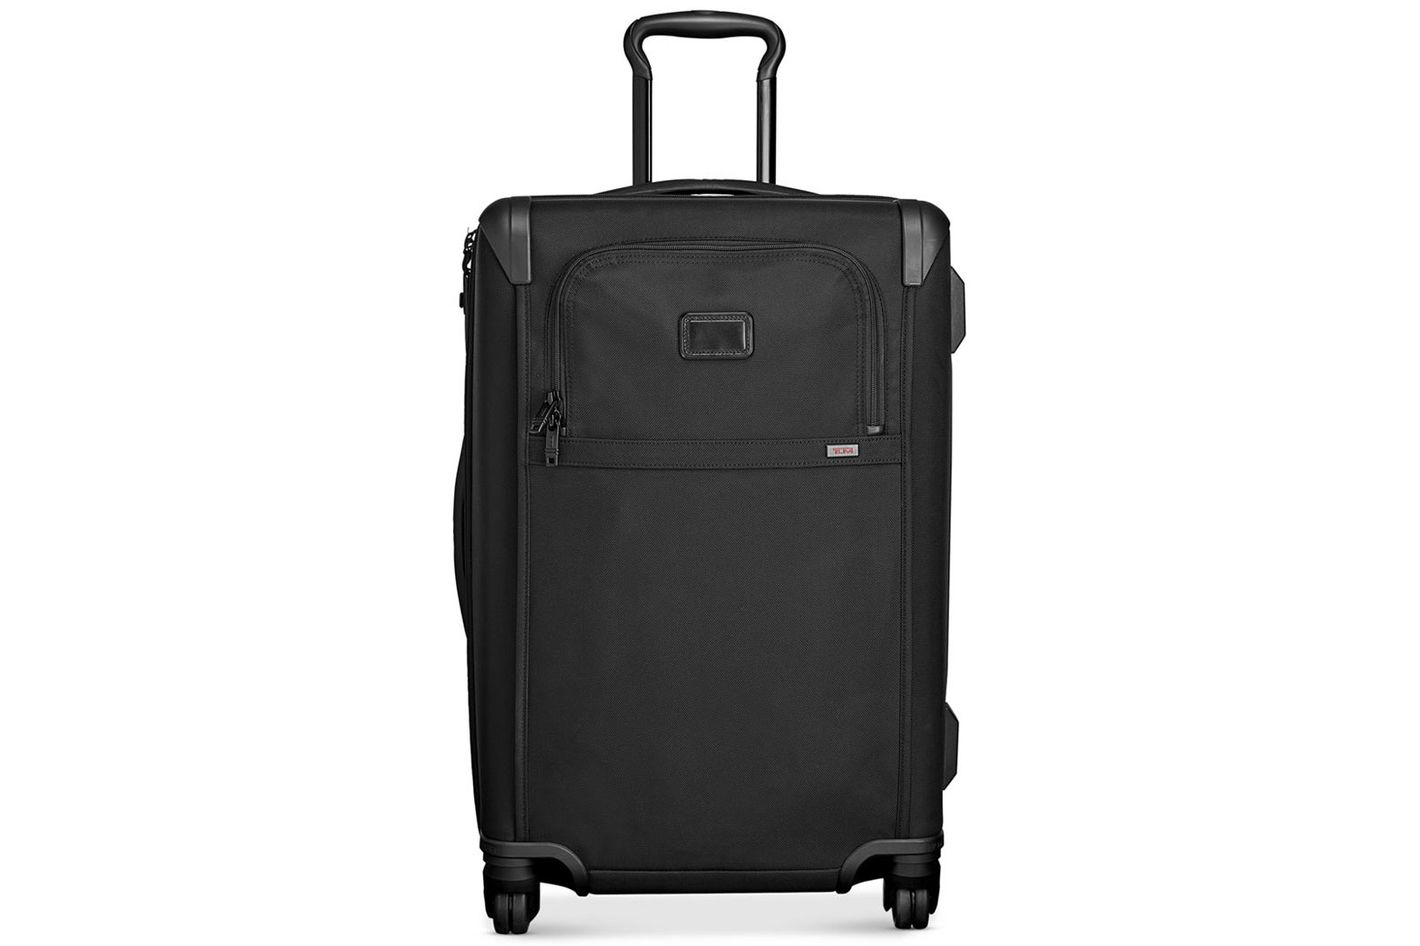 14 Best Rolling Carry On Luggage 2018 7d7dbe3009c14